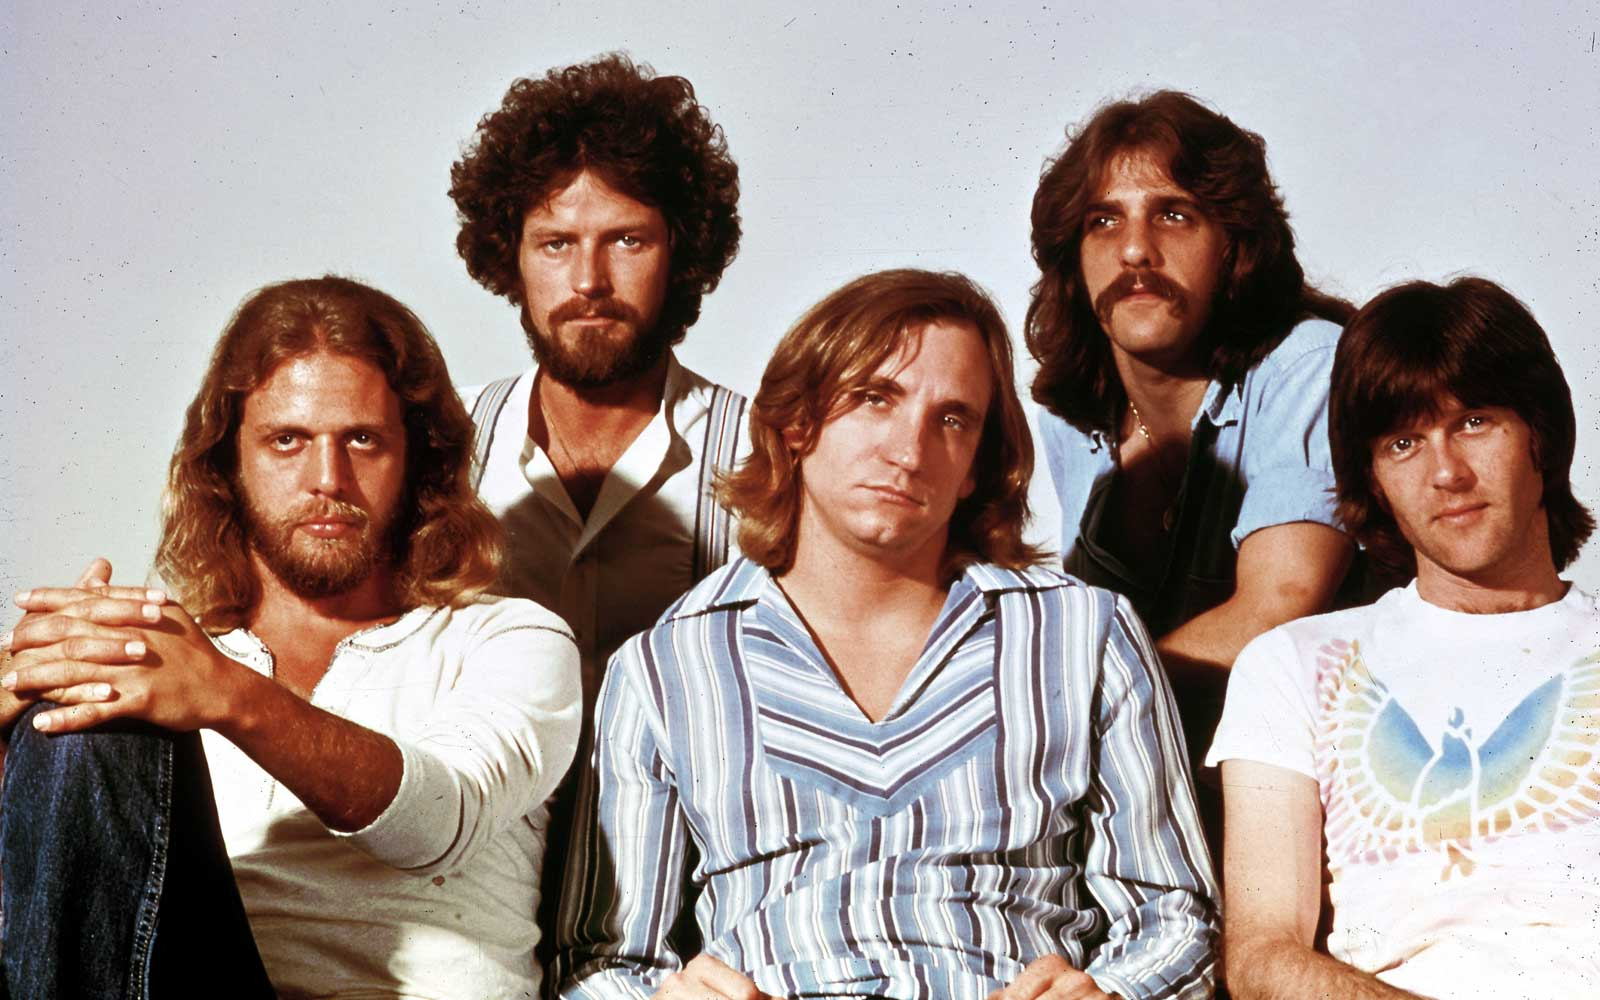 The Eagles are suing 'Hotel California' in Mexico